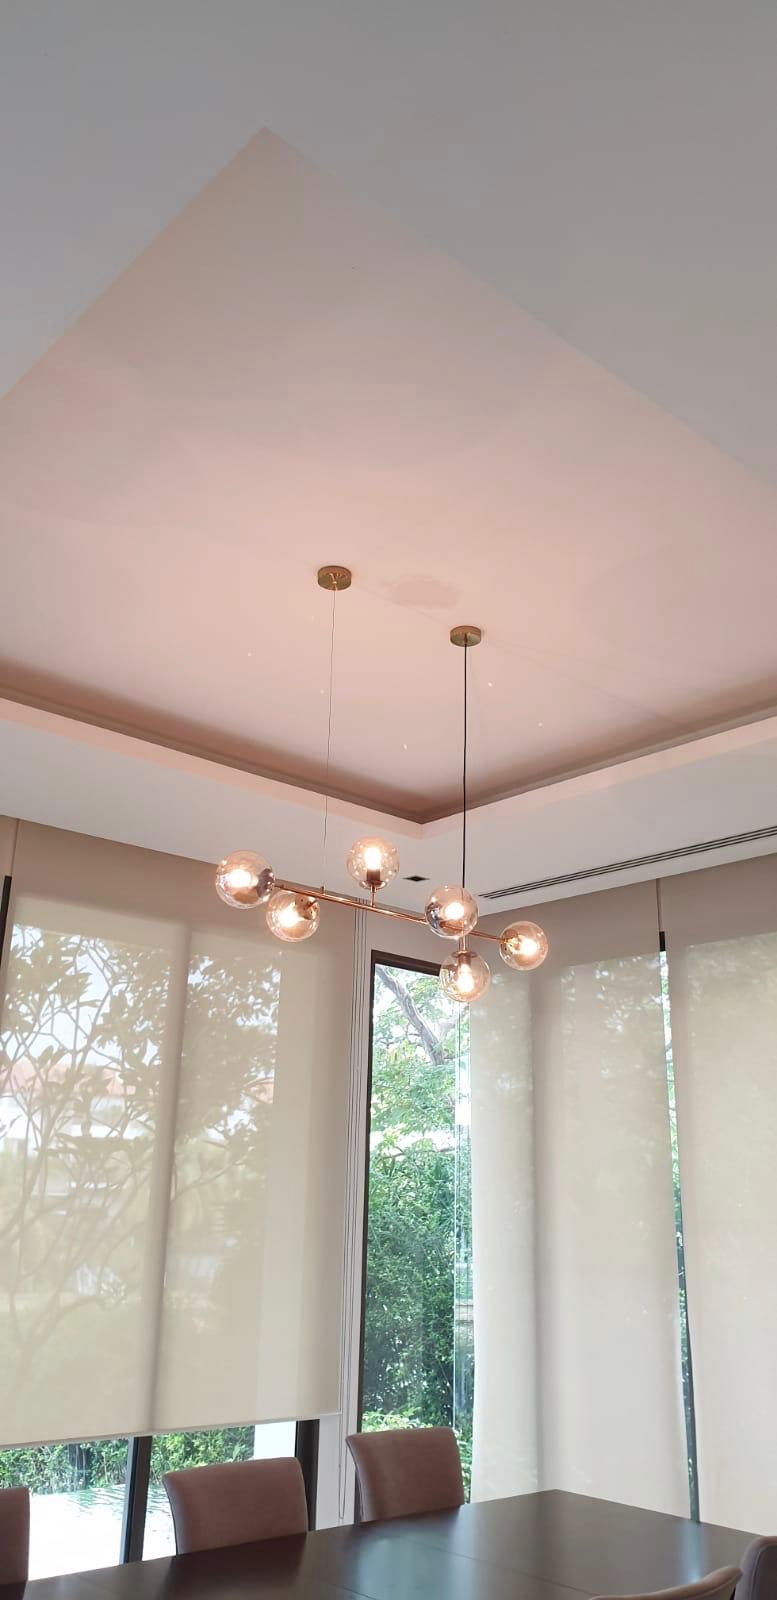 Install Hanging Light In Coral Island